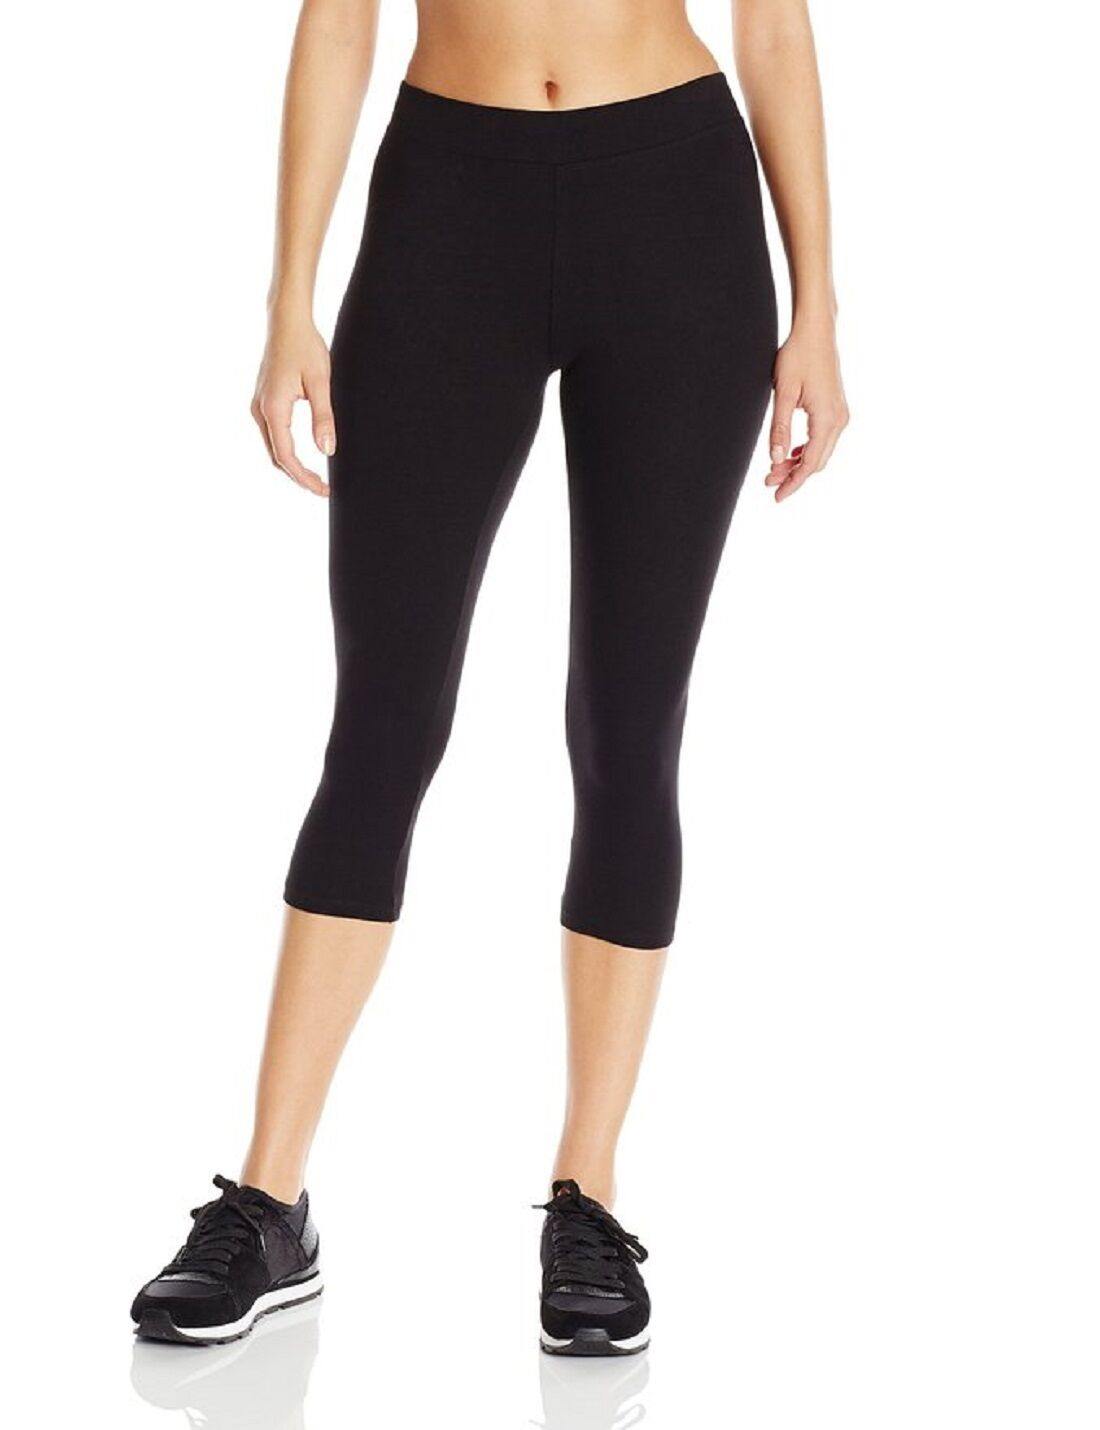 ESN-WLC PACT Women/'s Everyday Cropped Leggings